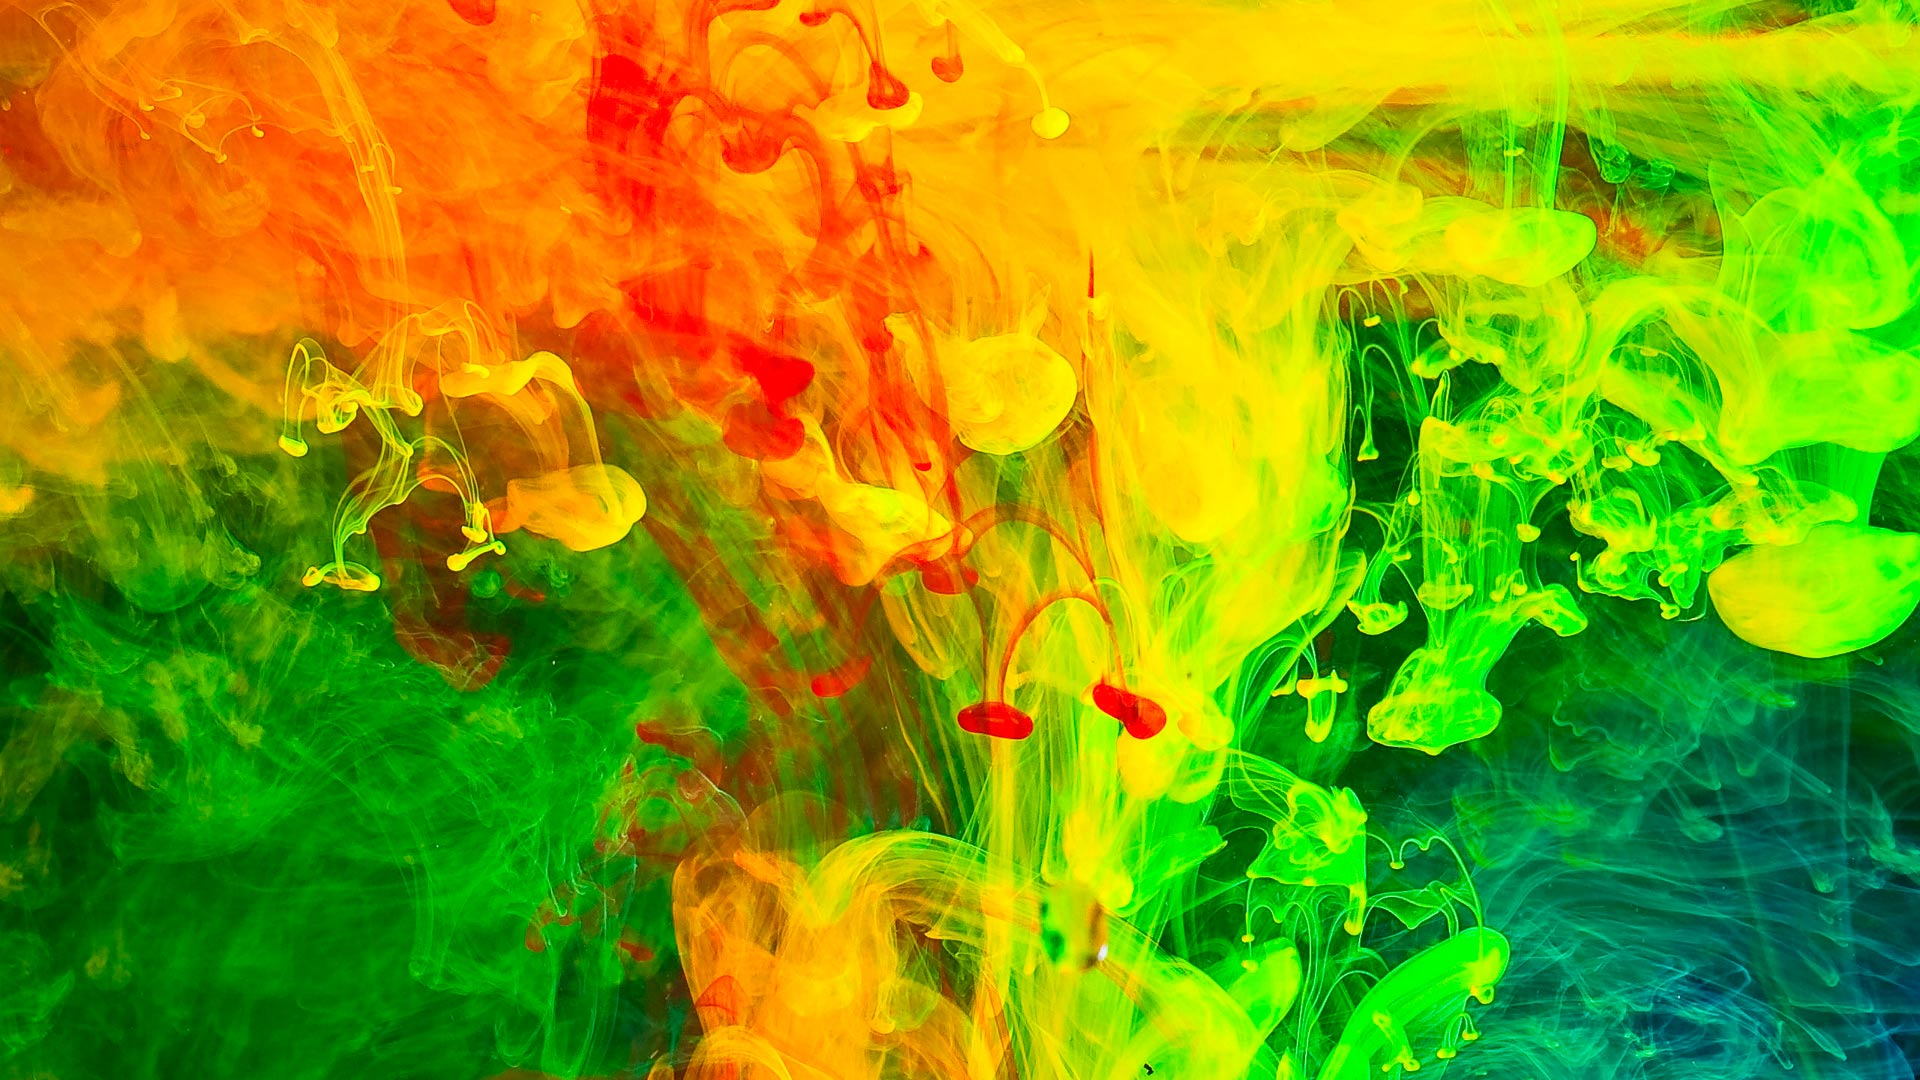 , abstraction, paint, texture paints, background, download photo, color paint texture background